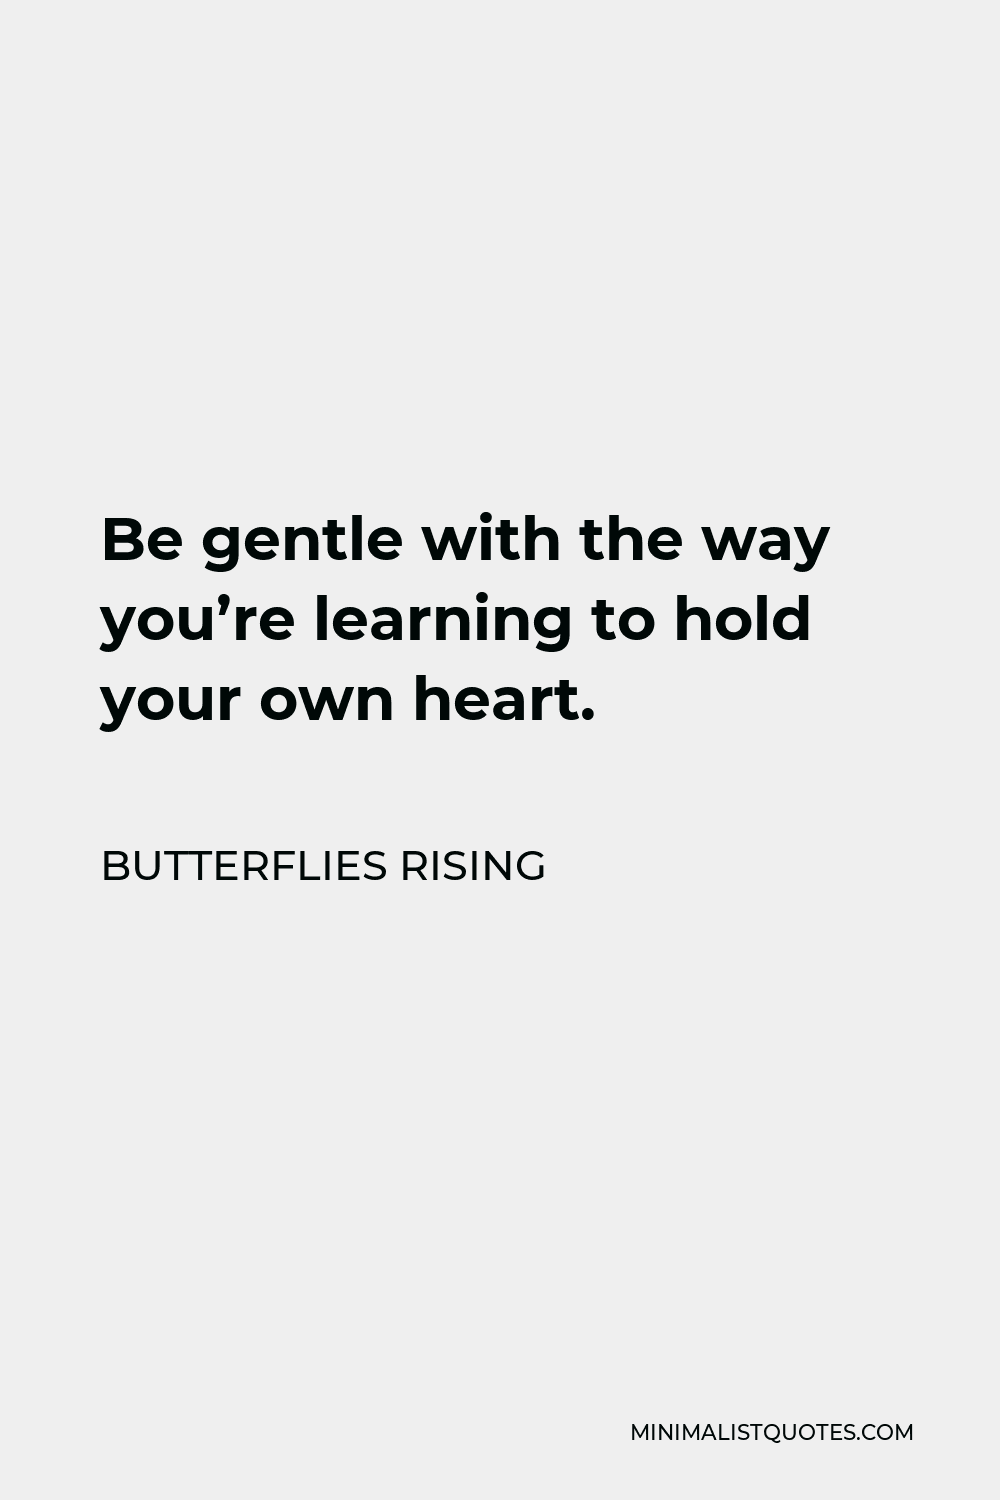 Butterflies Rising Quote - Be gentle with the way you're learning to hold your own heart.